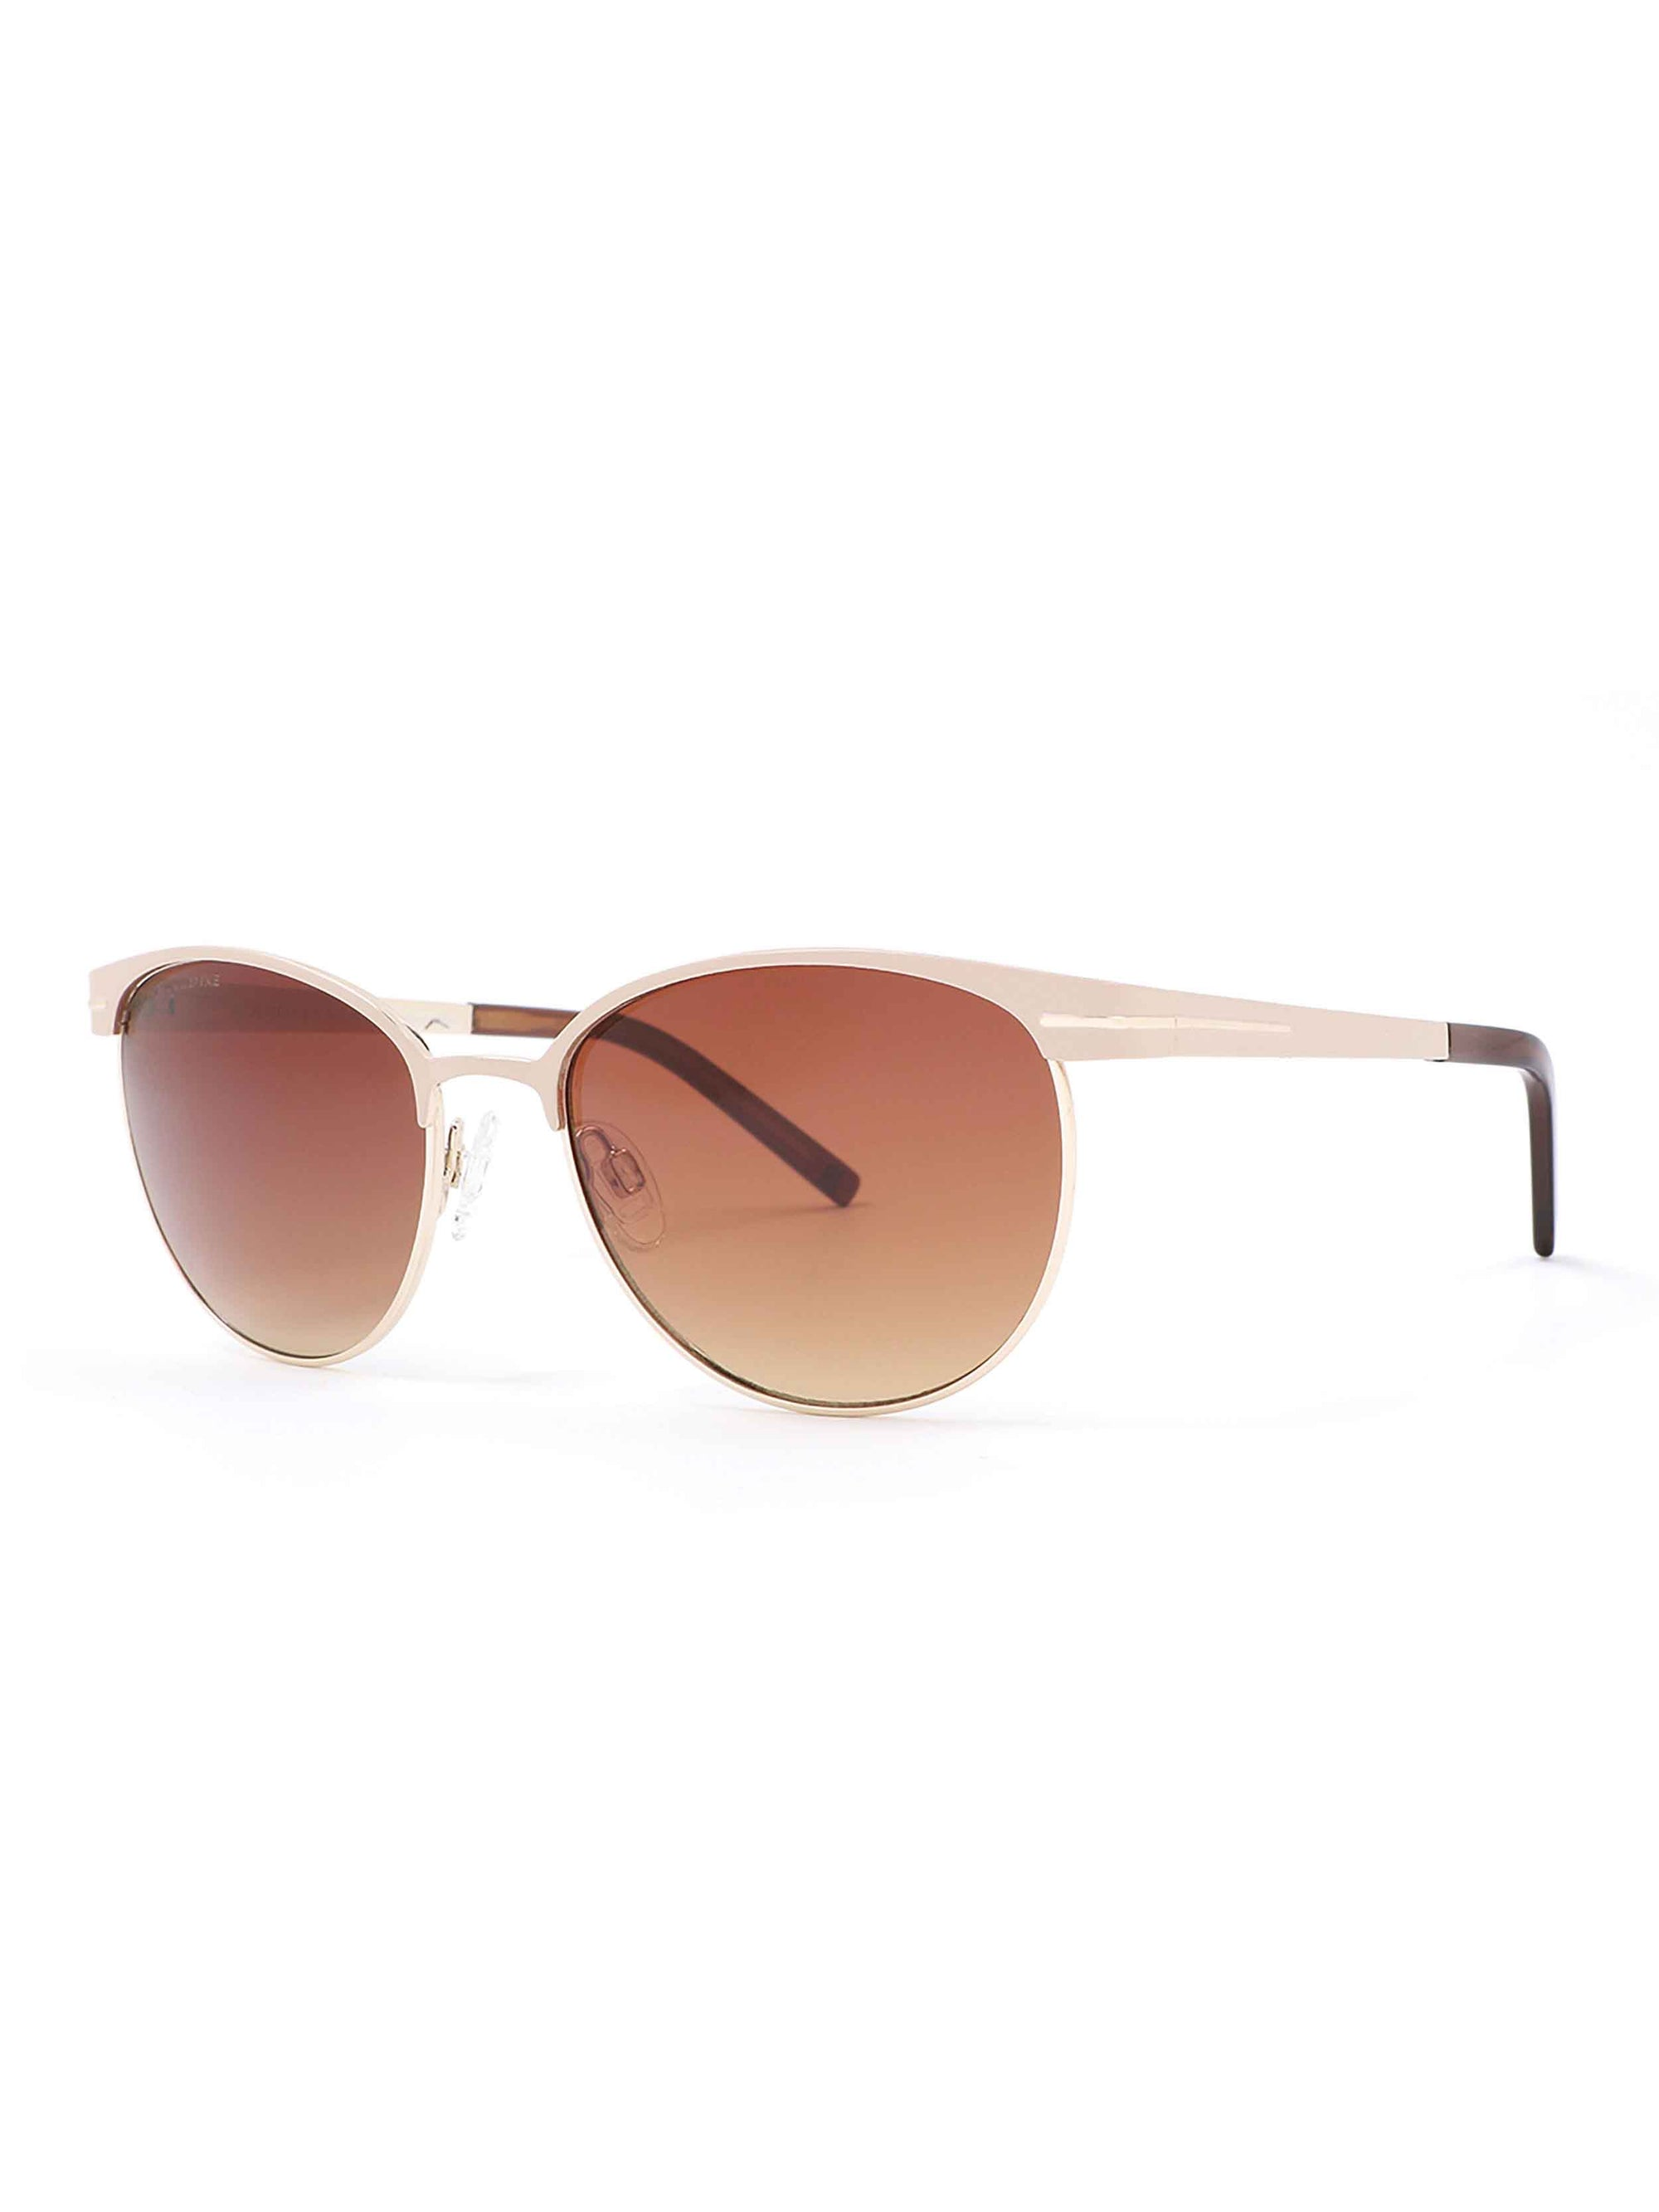 Lentes Carolina Lemke CL6302 02